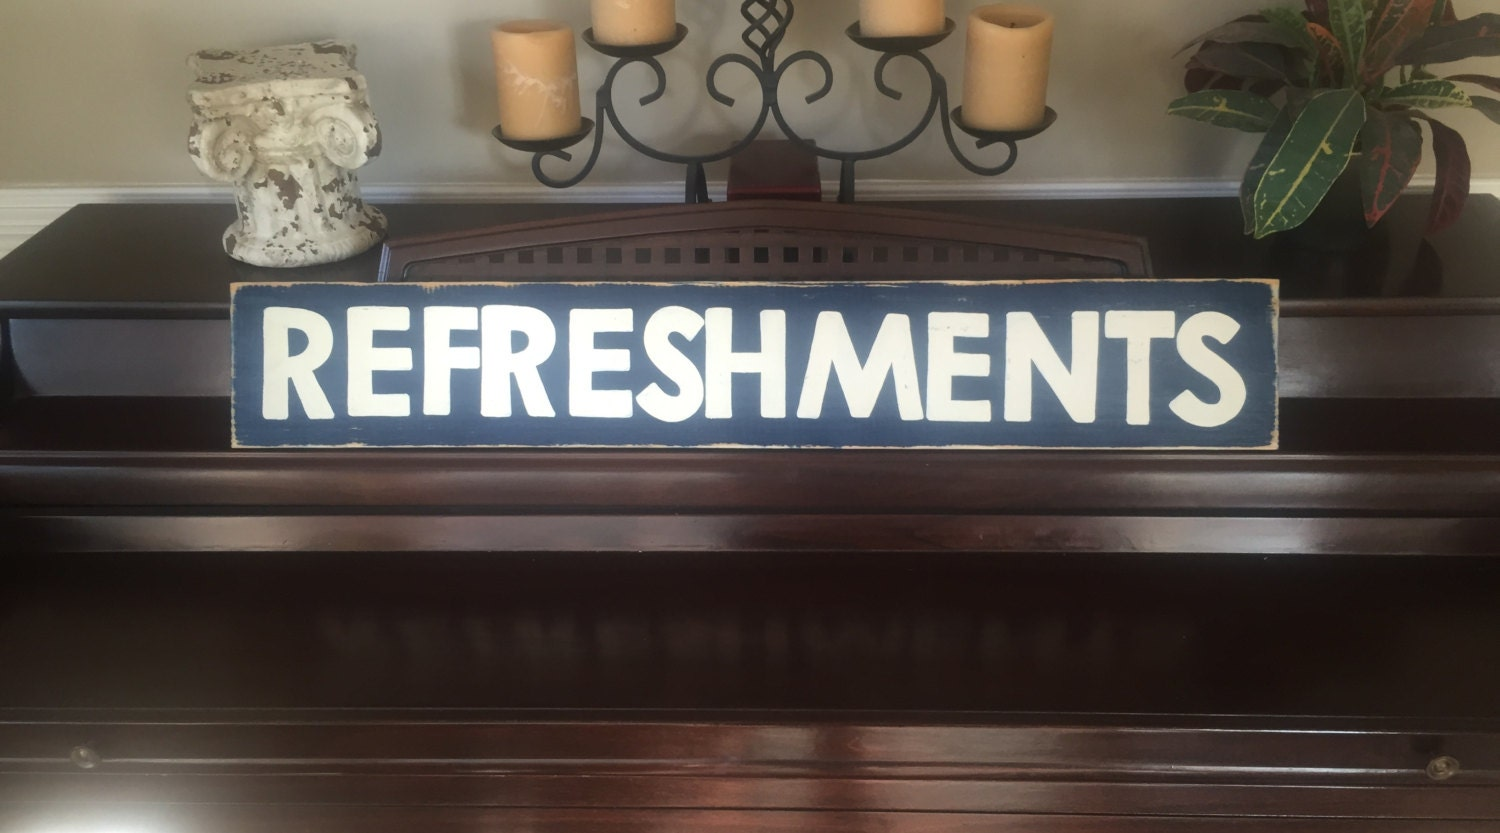 Refreshments Home Movie Theater Decor Snack Shop Concessions Ballpark Bar Room Sign Primitive Wooden Hp You